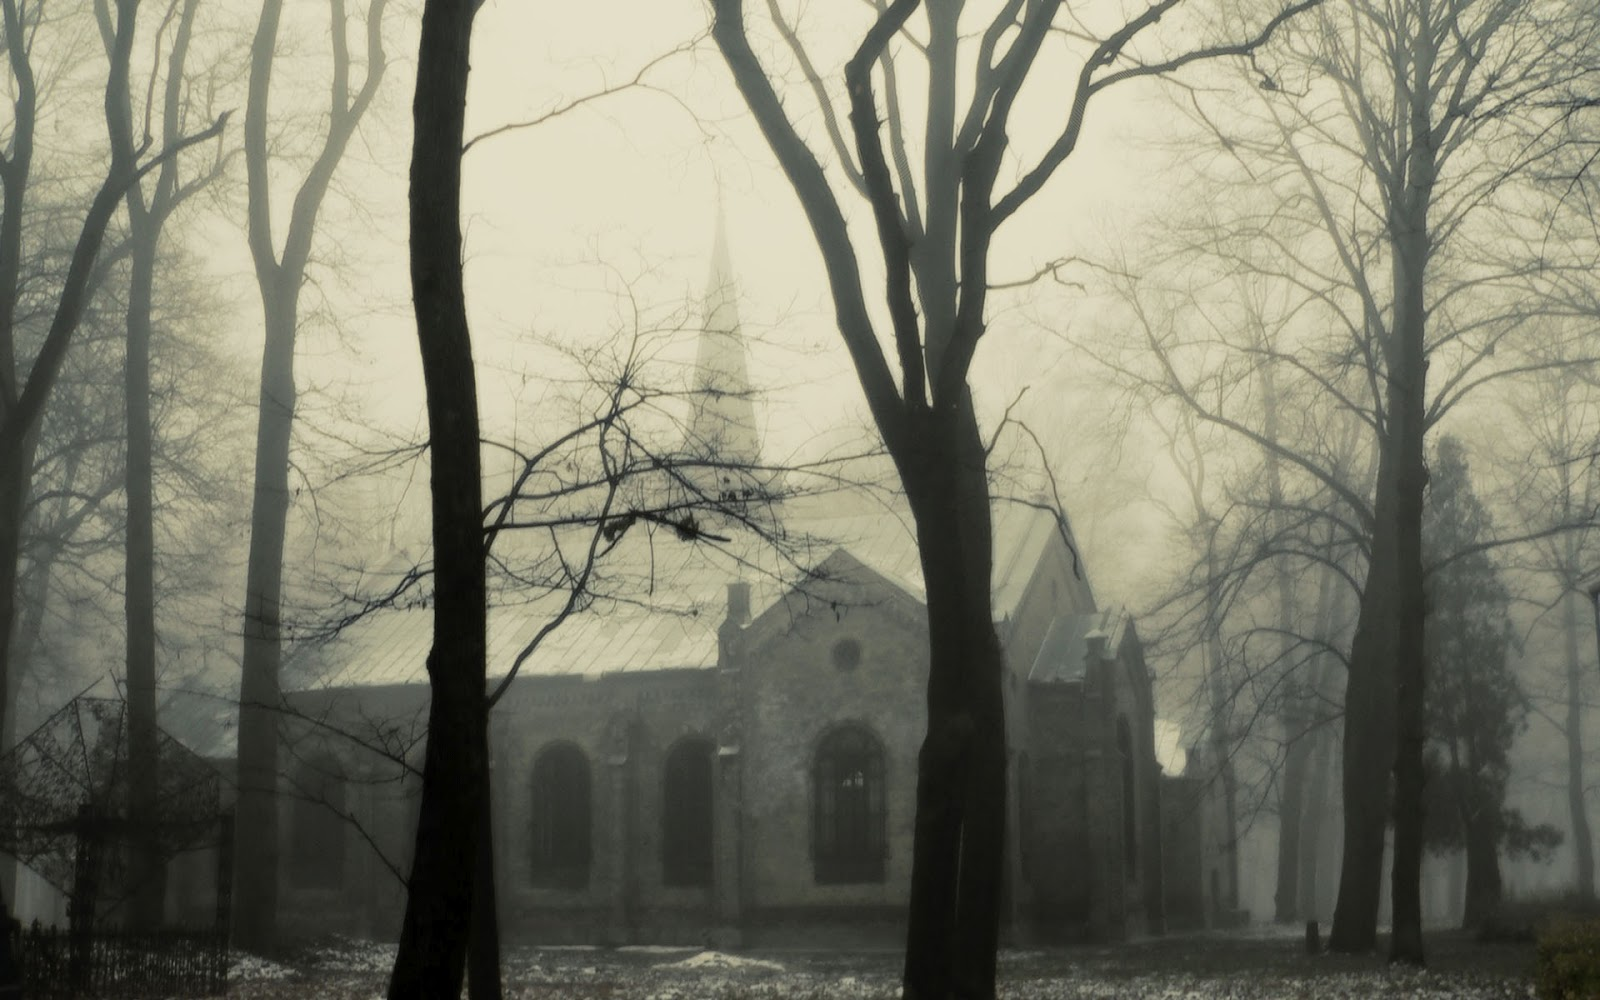 Wallpaper a day church in the trees dark creepy wallpaper